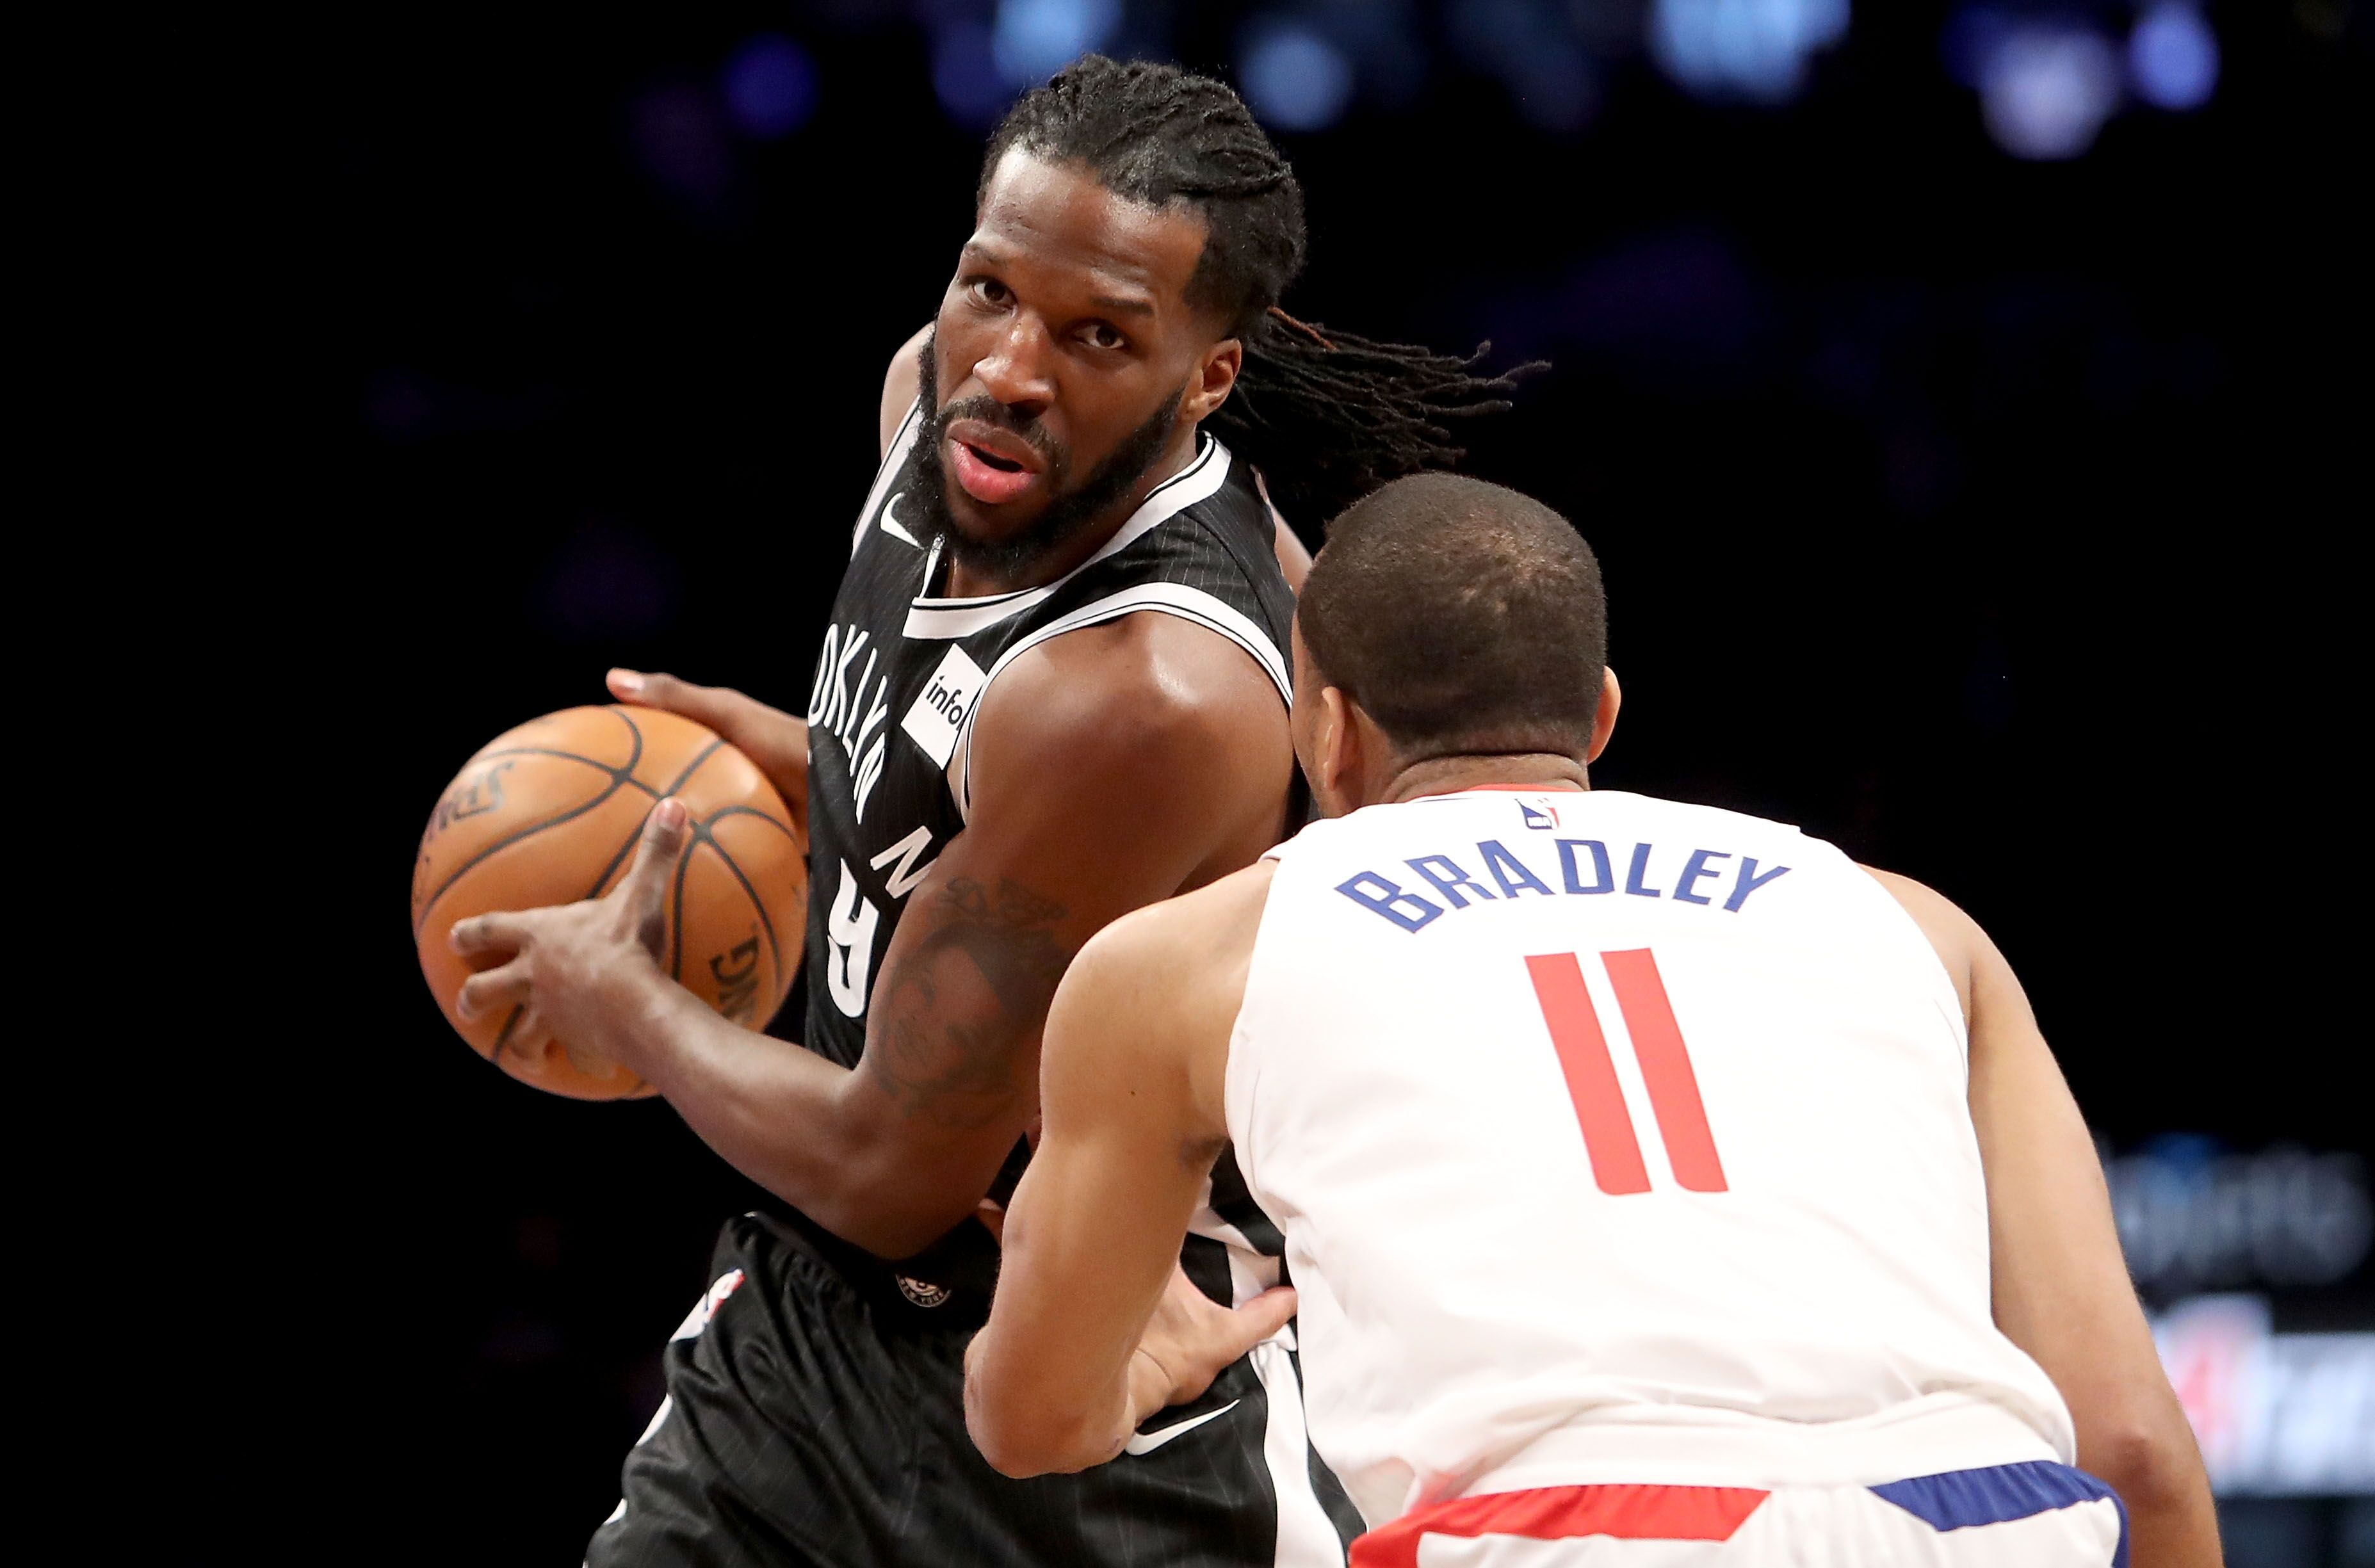 Bradley injury Avery Angeles  Los Clippers: derails